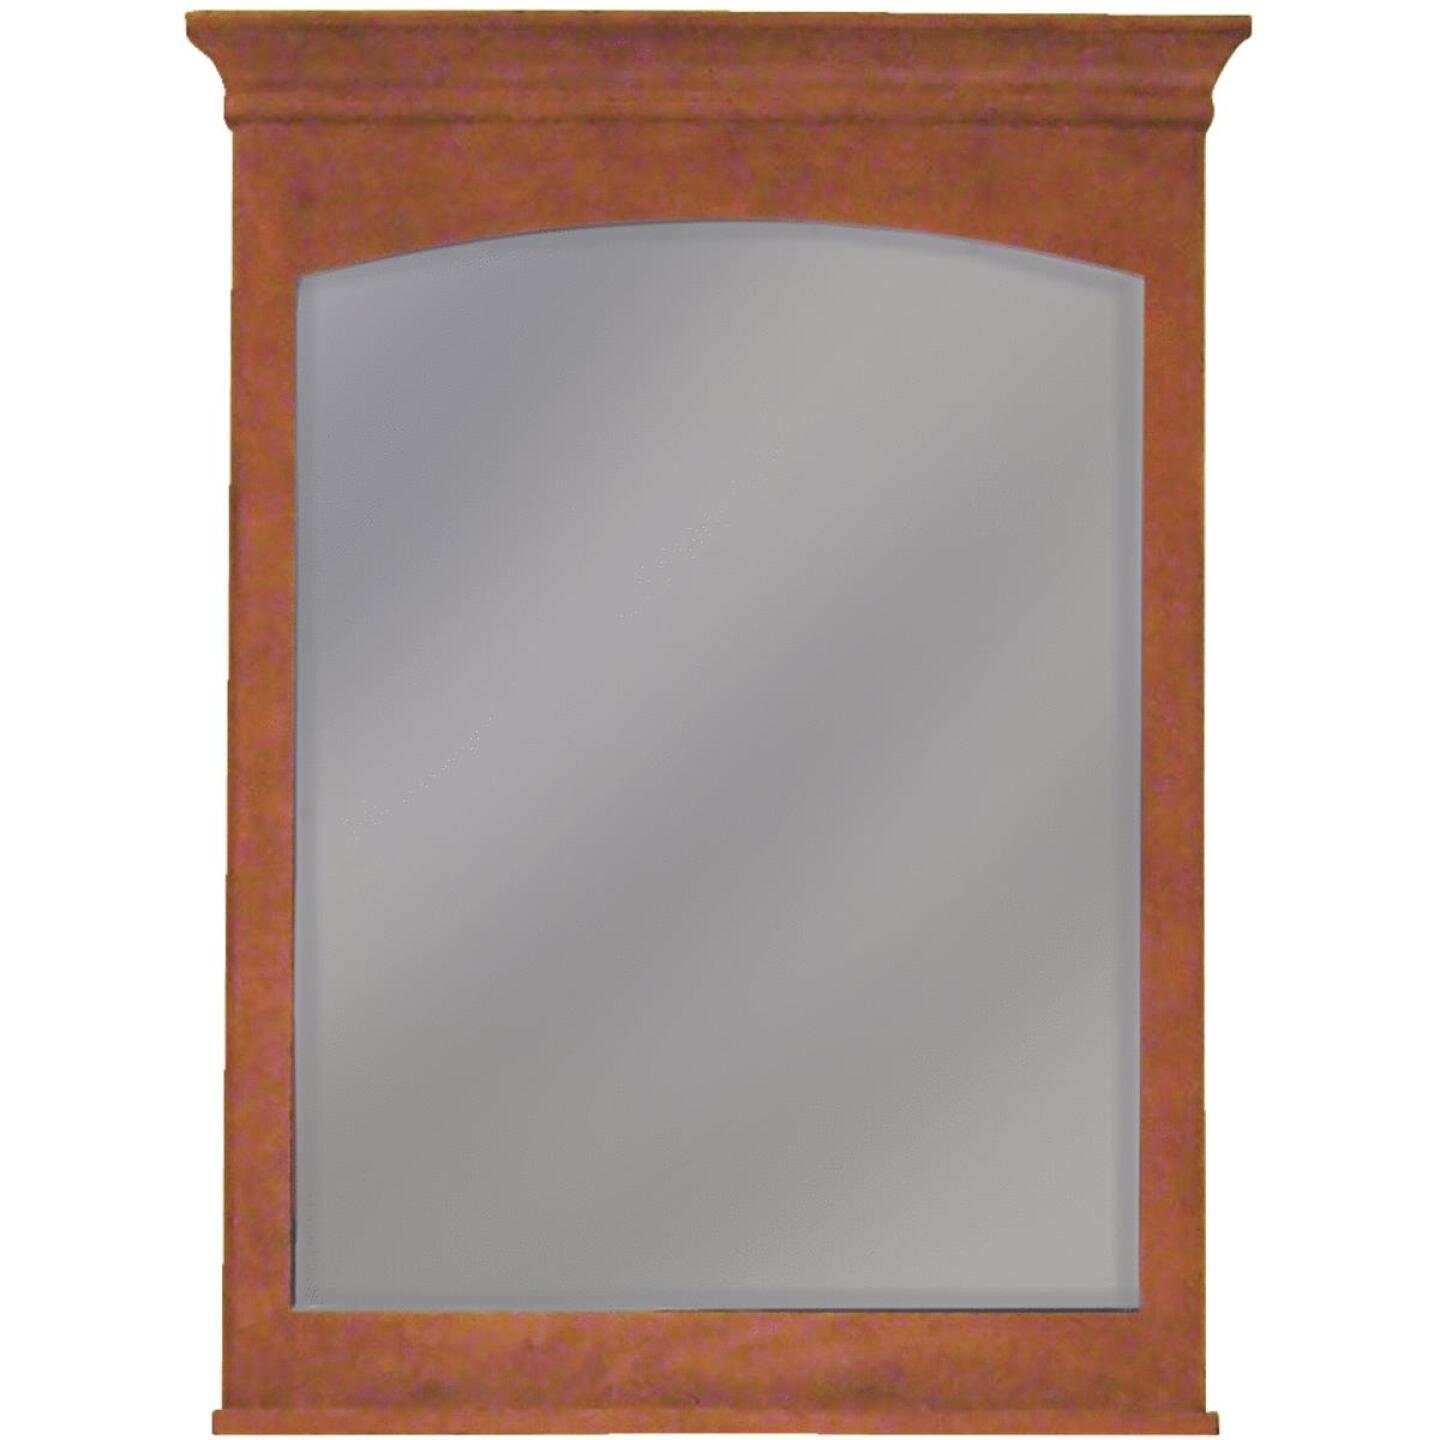 Sunny Wood Expressions Cinnamon 30 In. W x 40 In. H Vanity Mirror Image 2